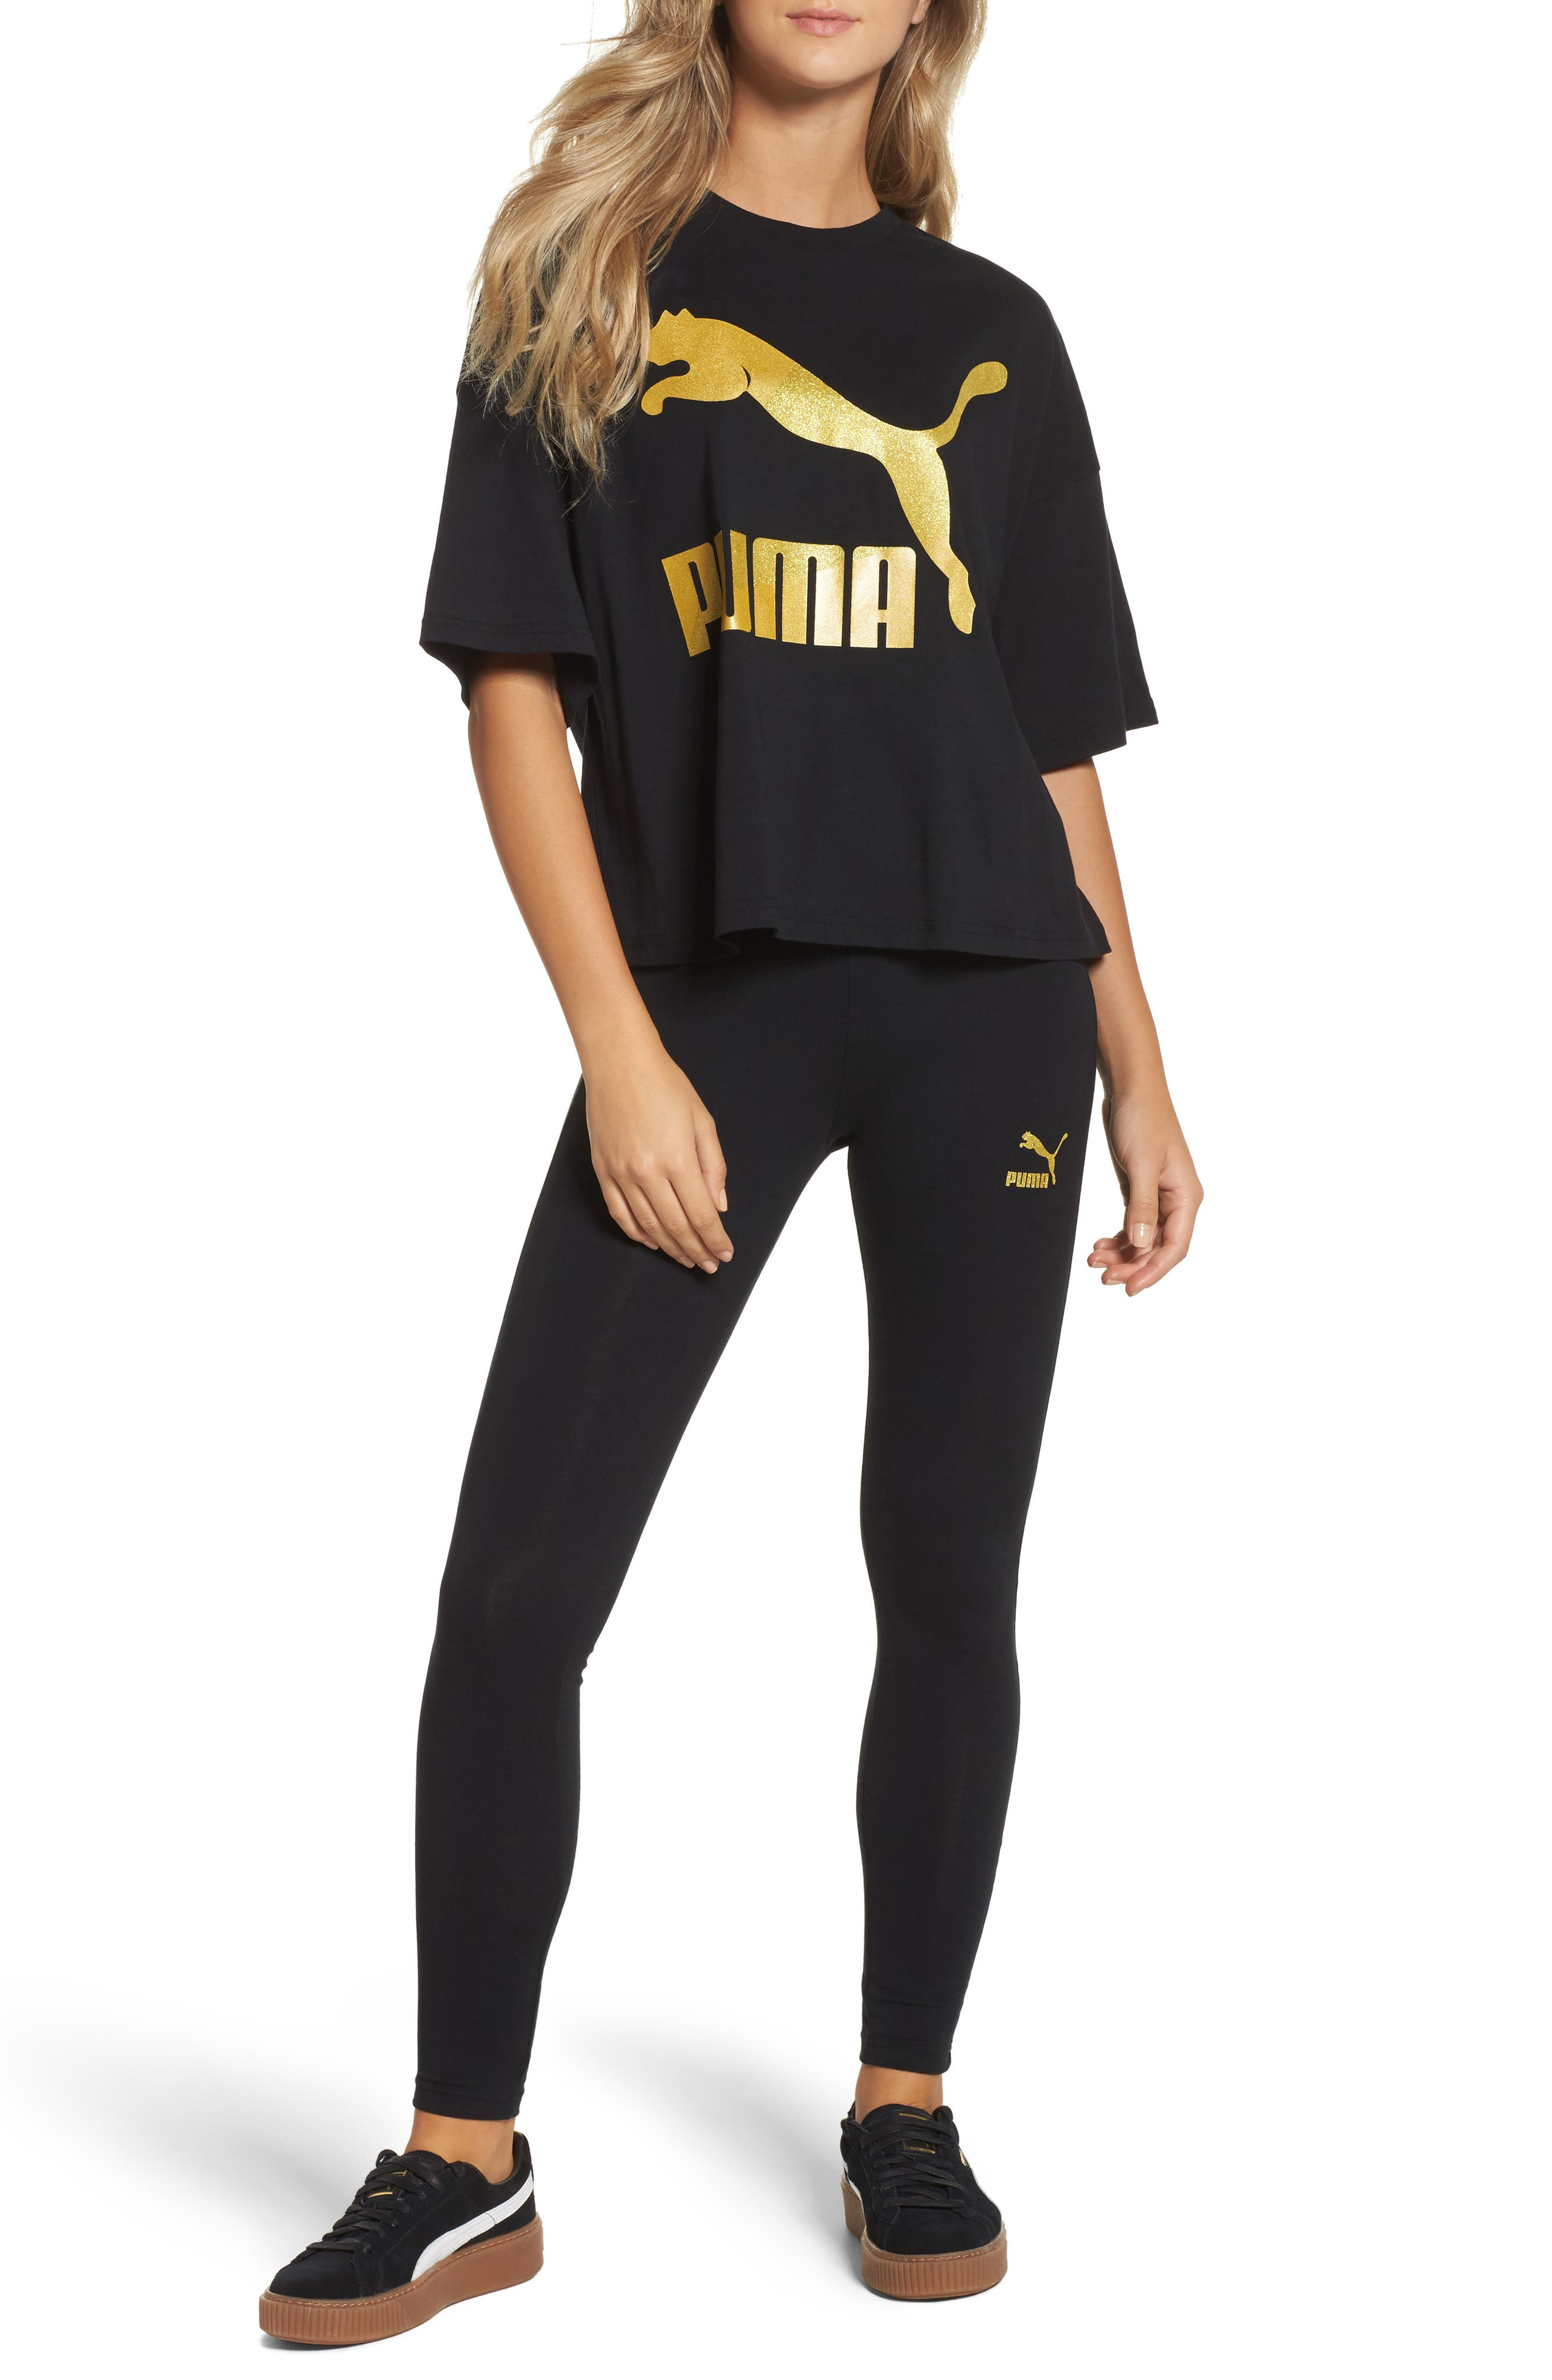 Glam Oversize Tee,                             Alternate thumbnail 8, color,                             Puma Black-Gold Glitter